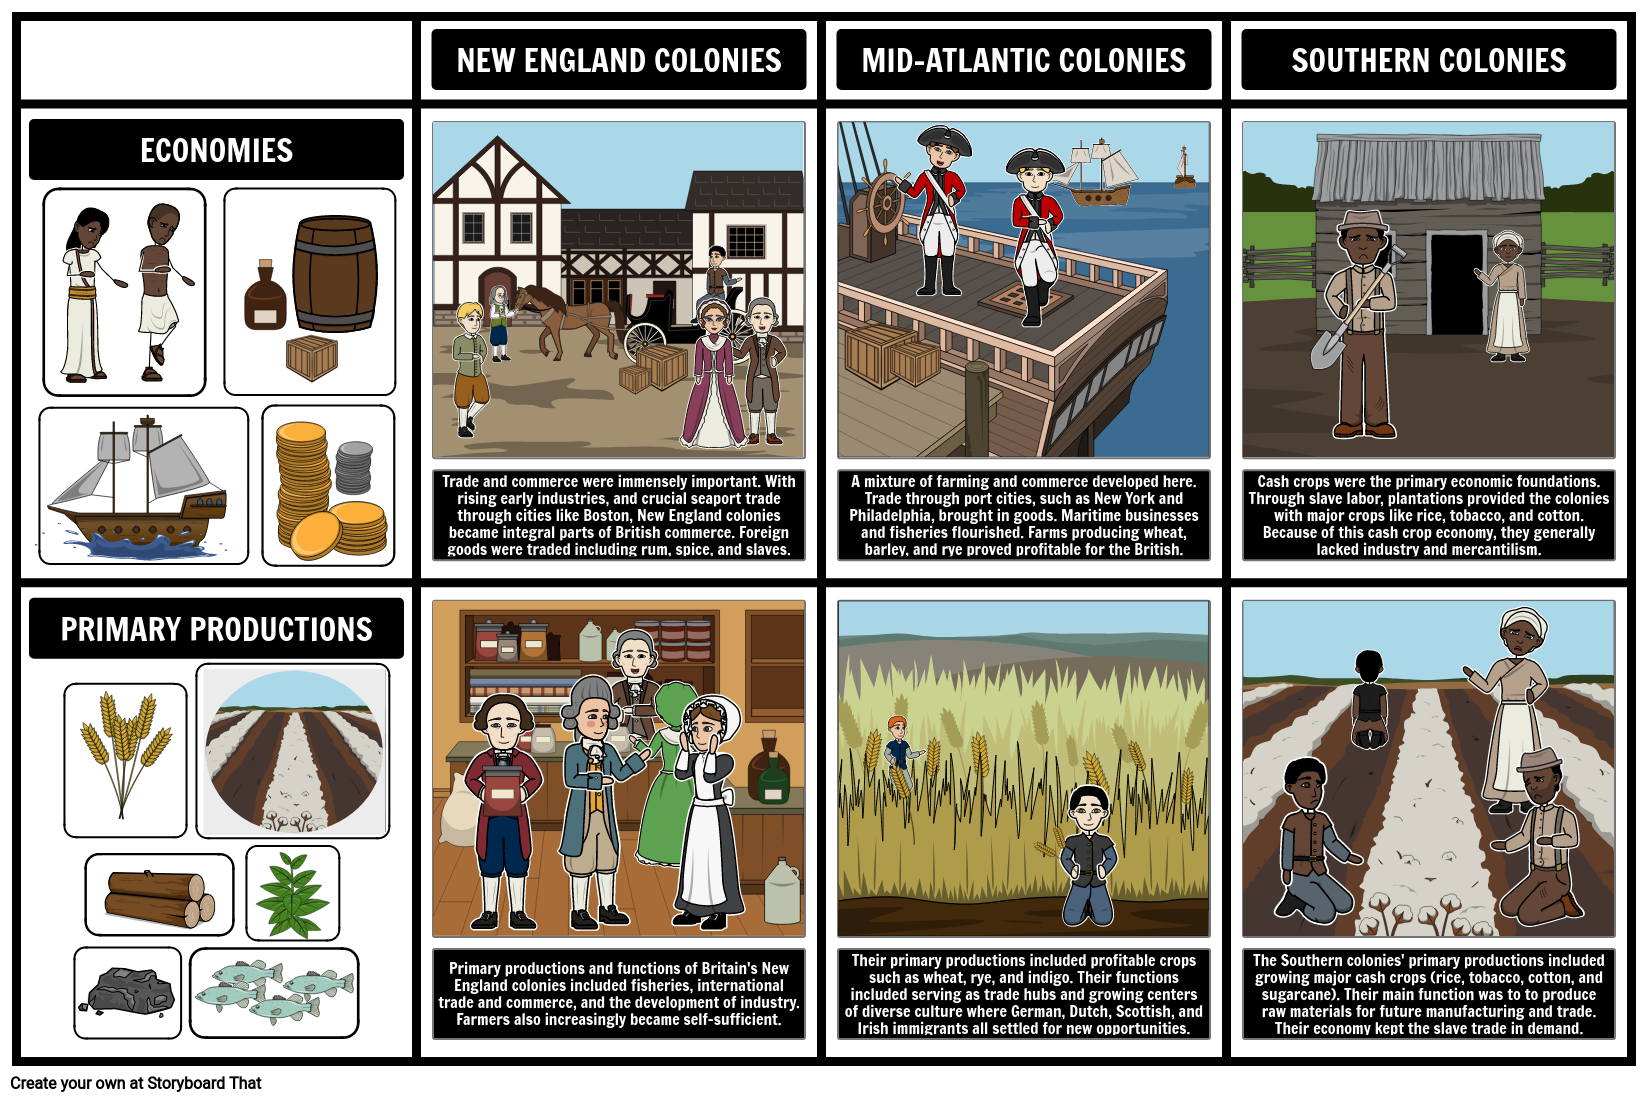 Causes of the american revolution timeline activities development of the american 13 colonies publicscrutiny